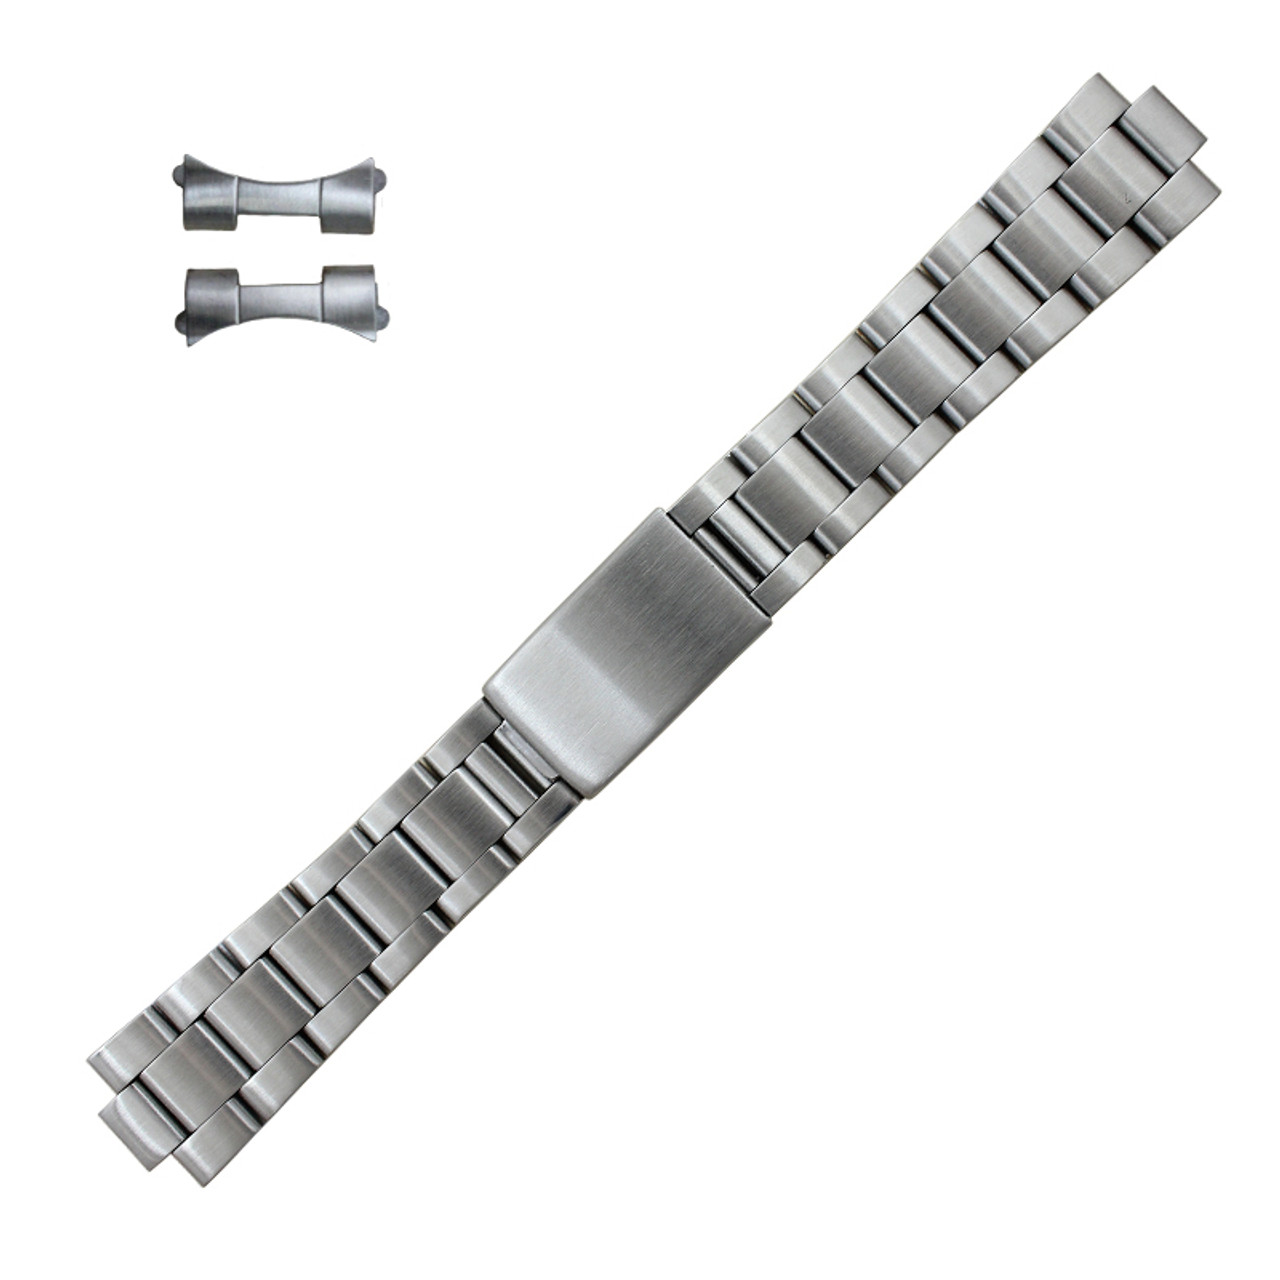 Generic Rolex® Band Bracelets Gents 20mm Stainless Steel Oyster 6 1/4 Inch  Length